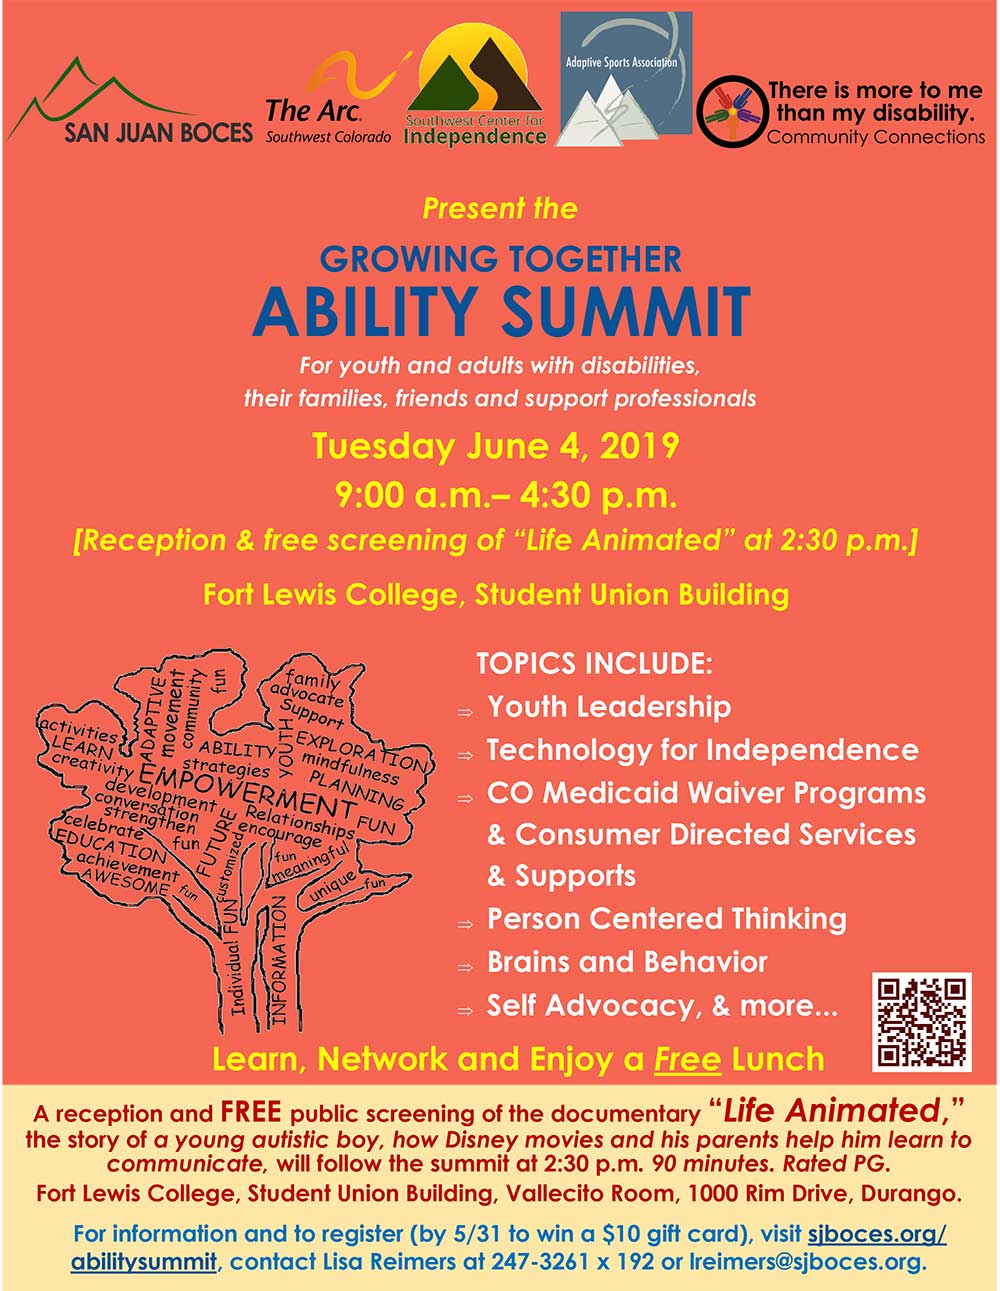 Growing-Together-Ability-Summit-June-4-announcement-052019